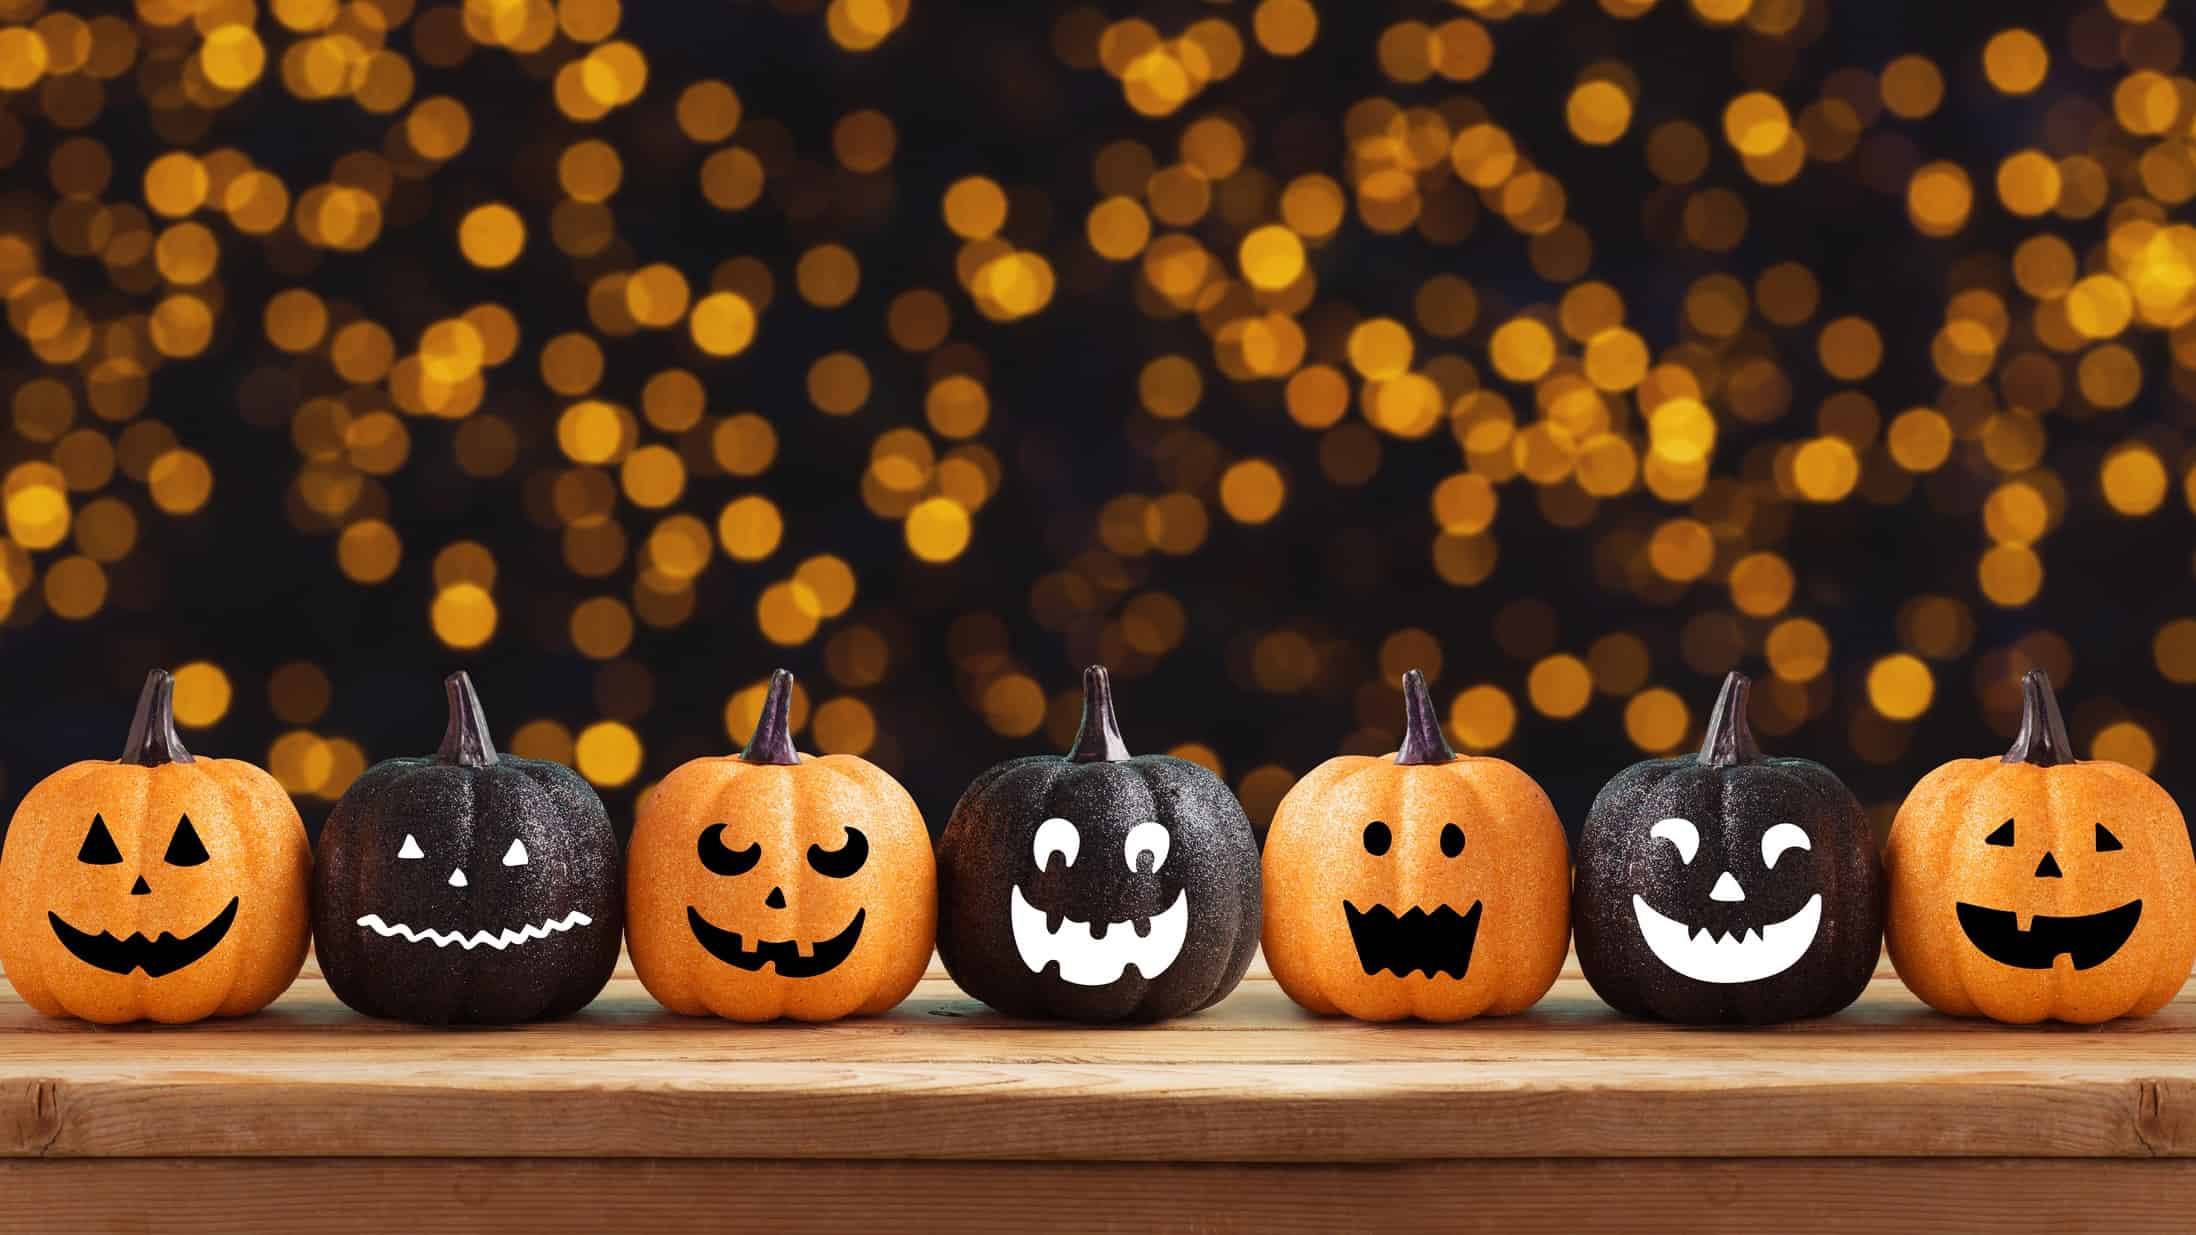 asx growth shares for october represented by miniature jack o lantern pumpkins